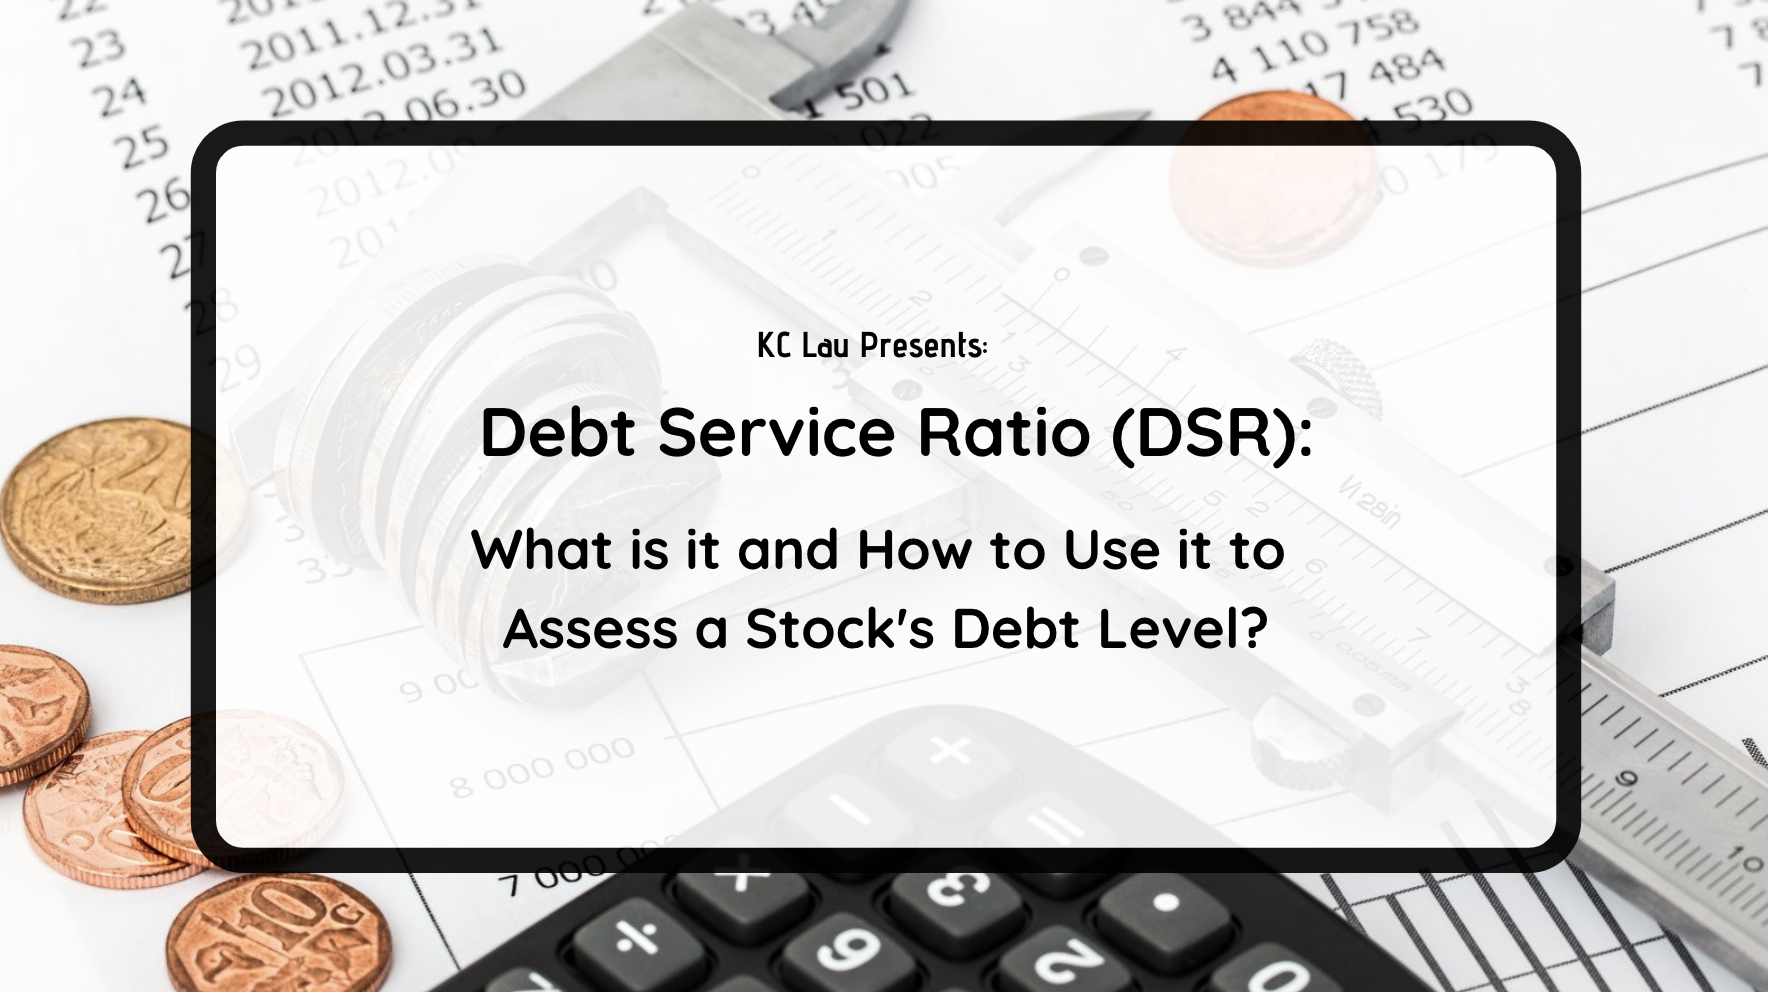 Debt Service Ratio (DSR): What is it and How to Use it to Assess a Stock's Debt Level?